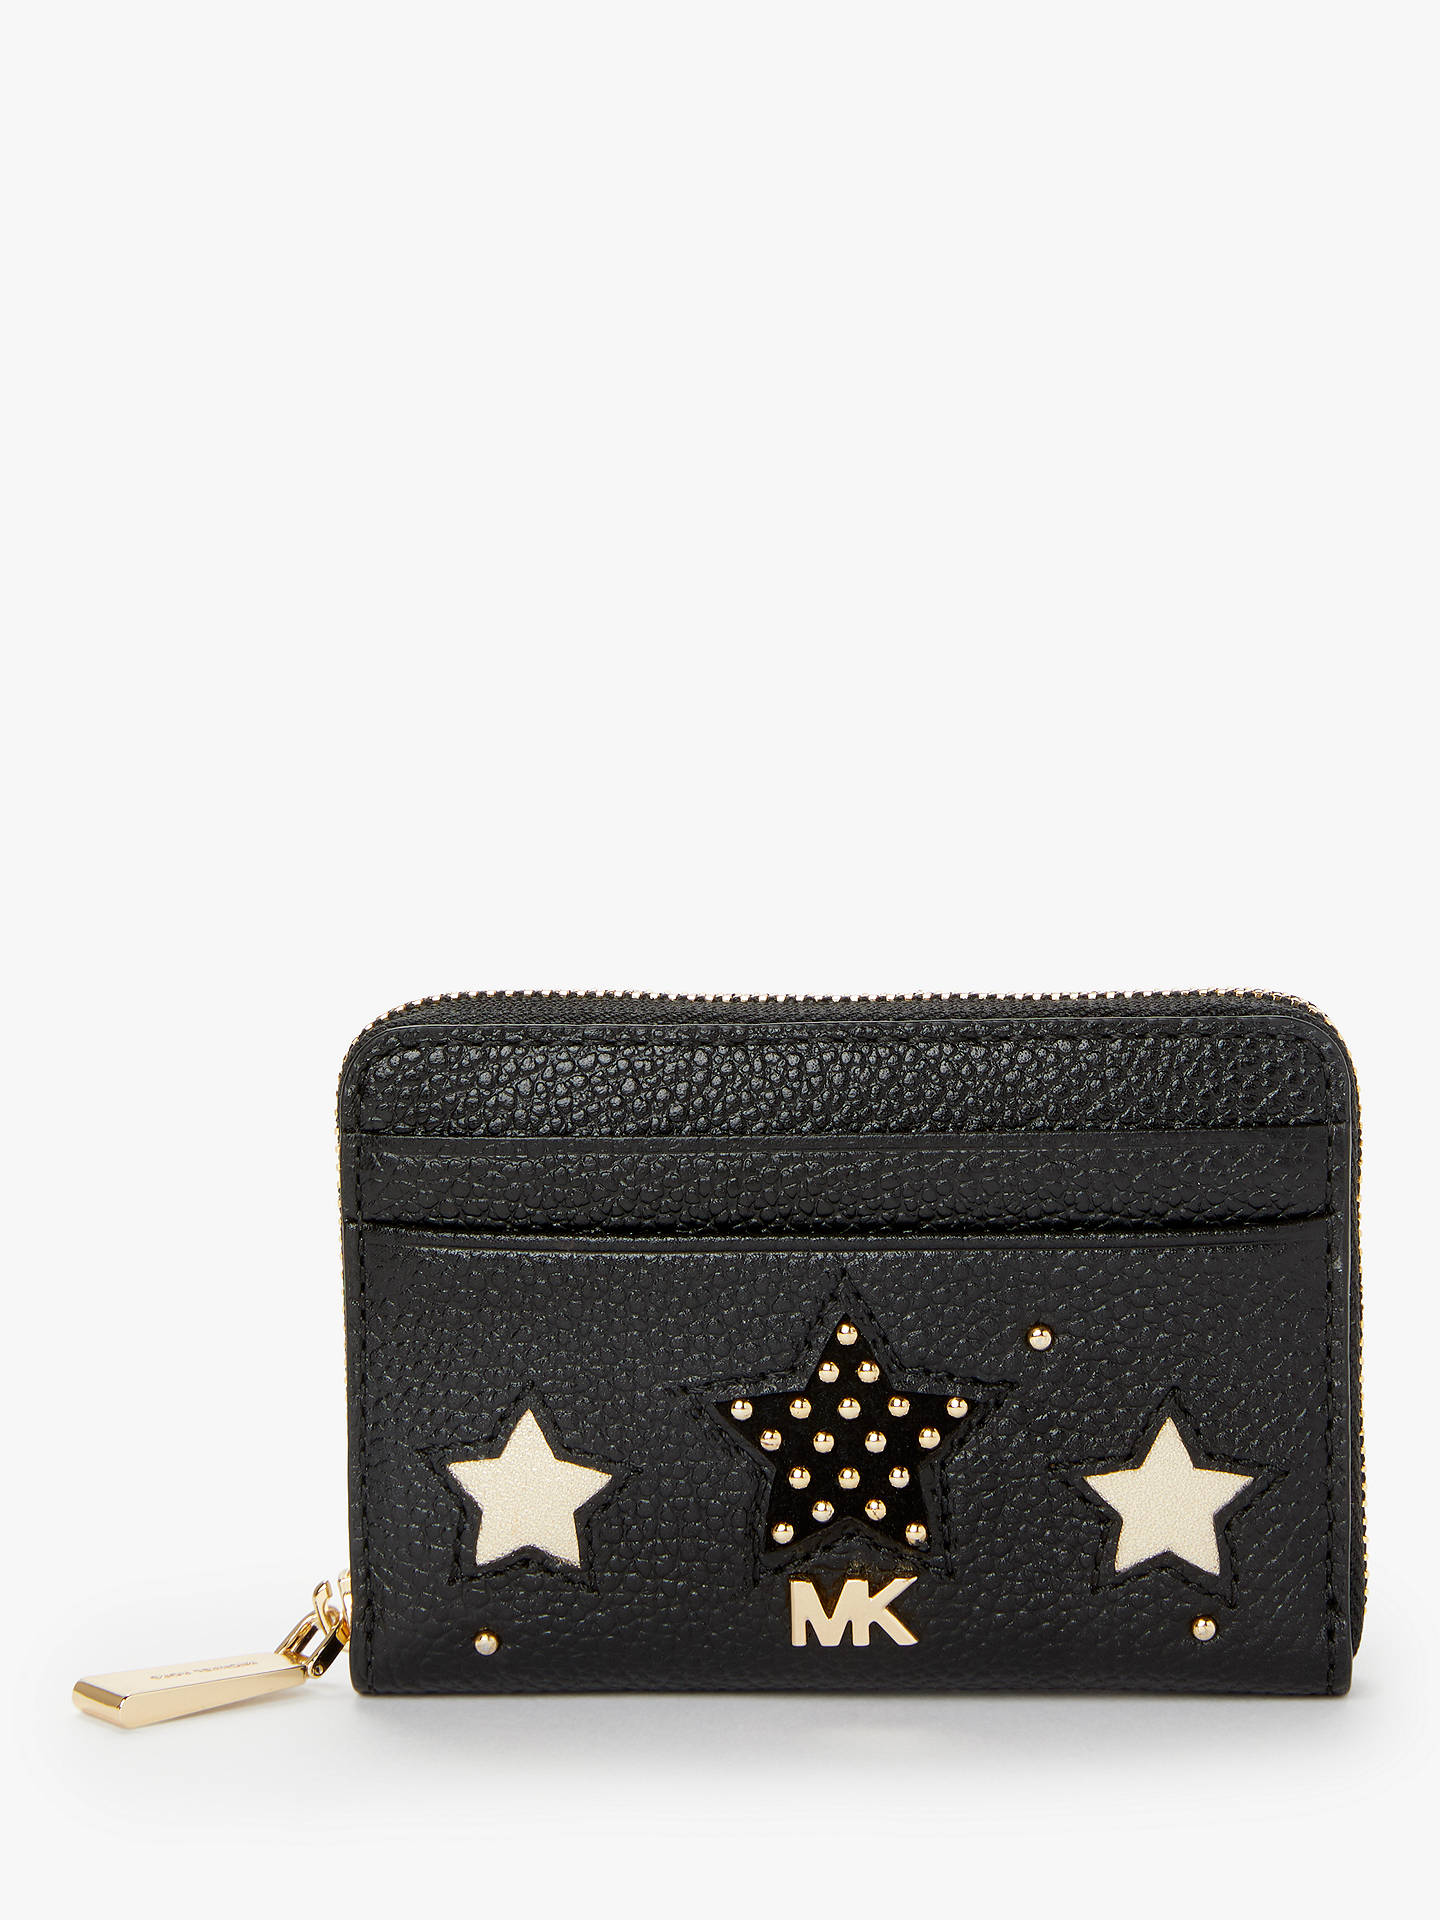 322c29d79521 Buy MICHAEL Michael Kors Money Pieces Leather Star Card Purse, Black/Gold  Online at ...